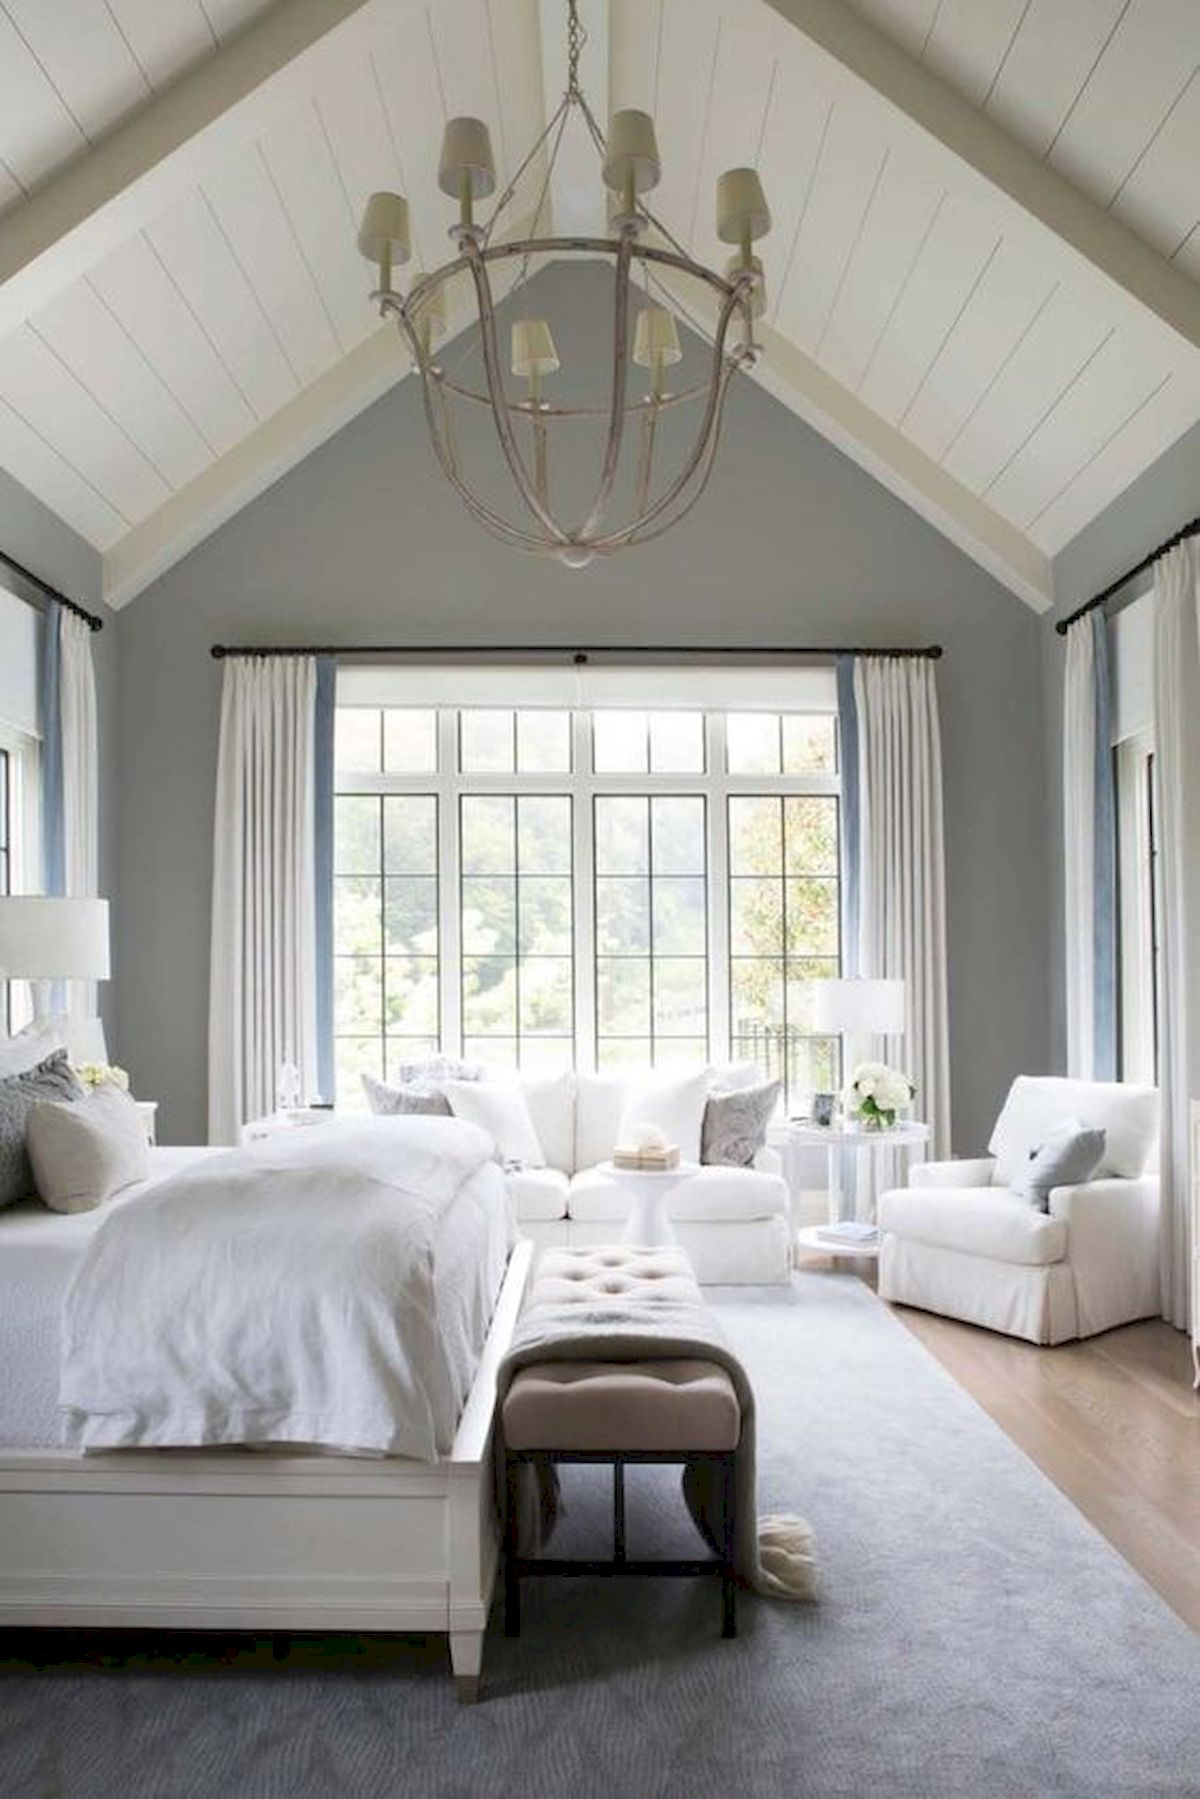 44 Awesome White Master Bedroom Design and Decor Ideas For Any Home Design (5)